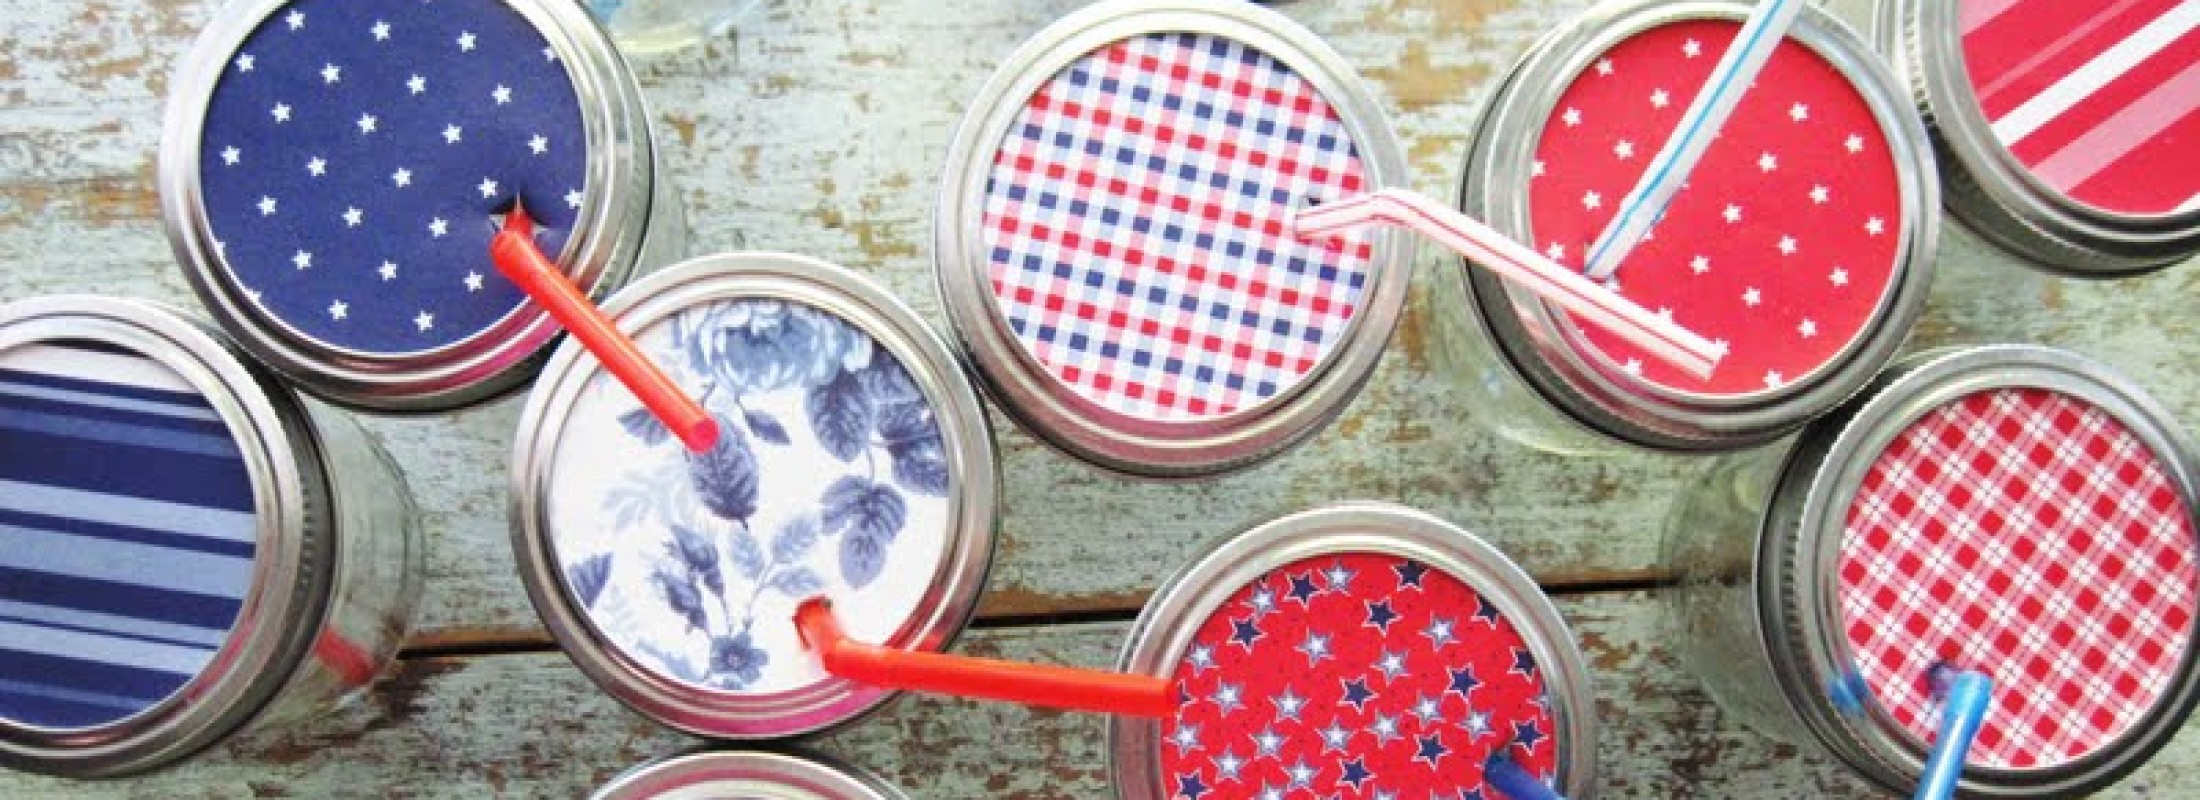 Mason jar project for July 4th. Photo by Two Shades of Pink.